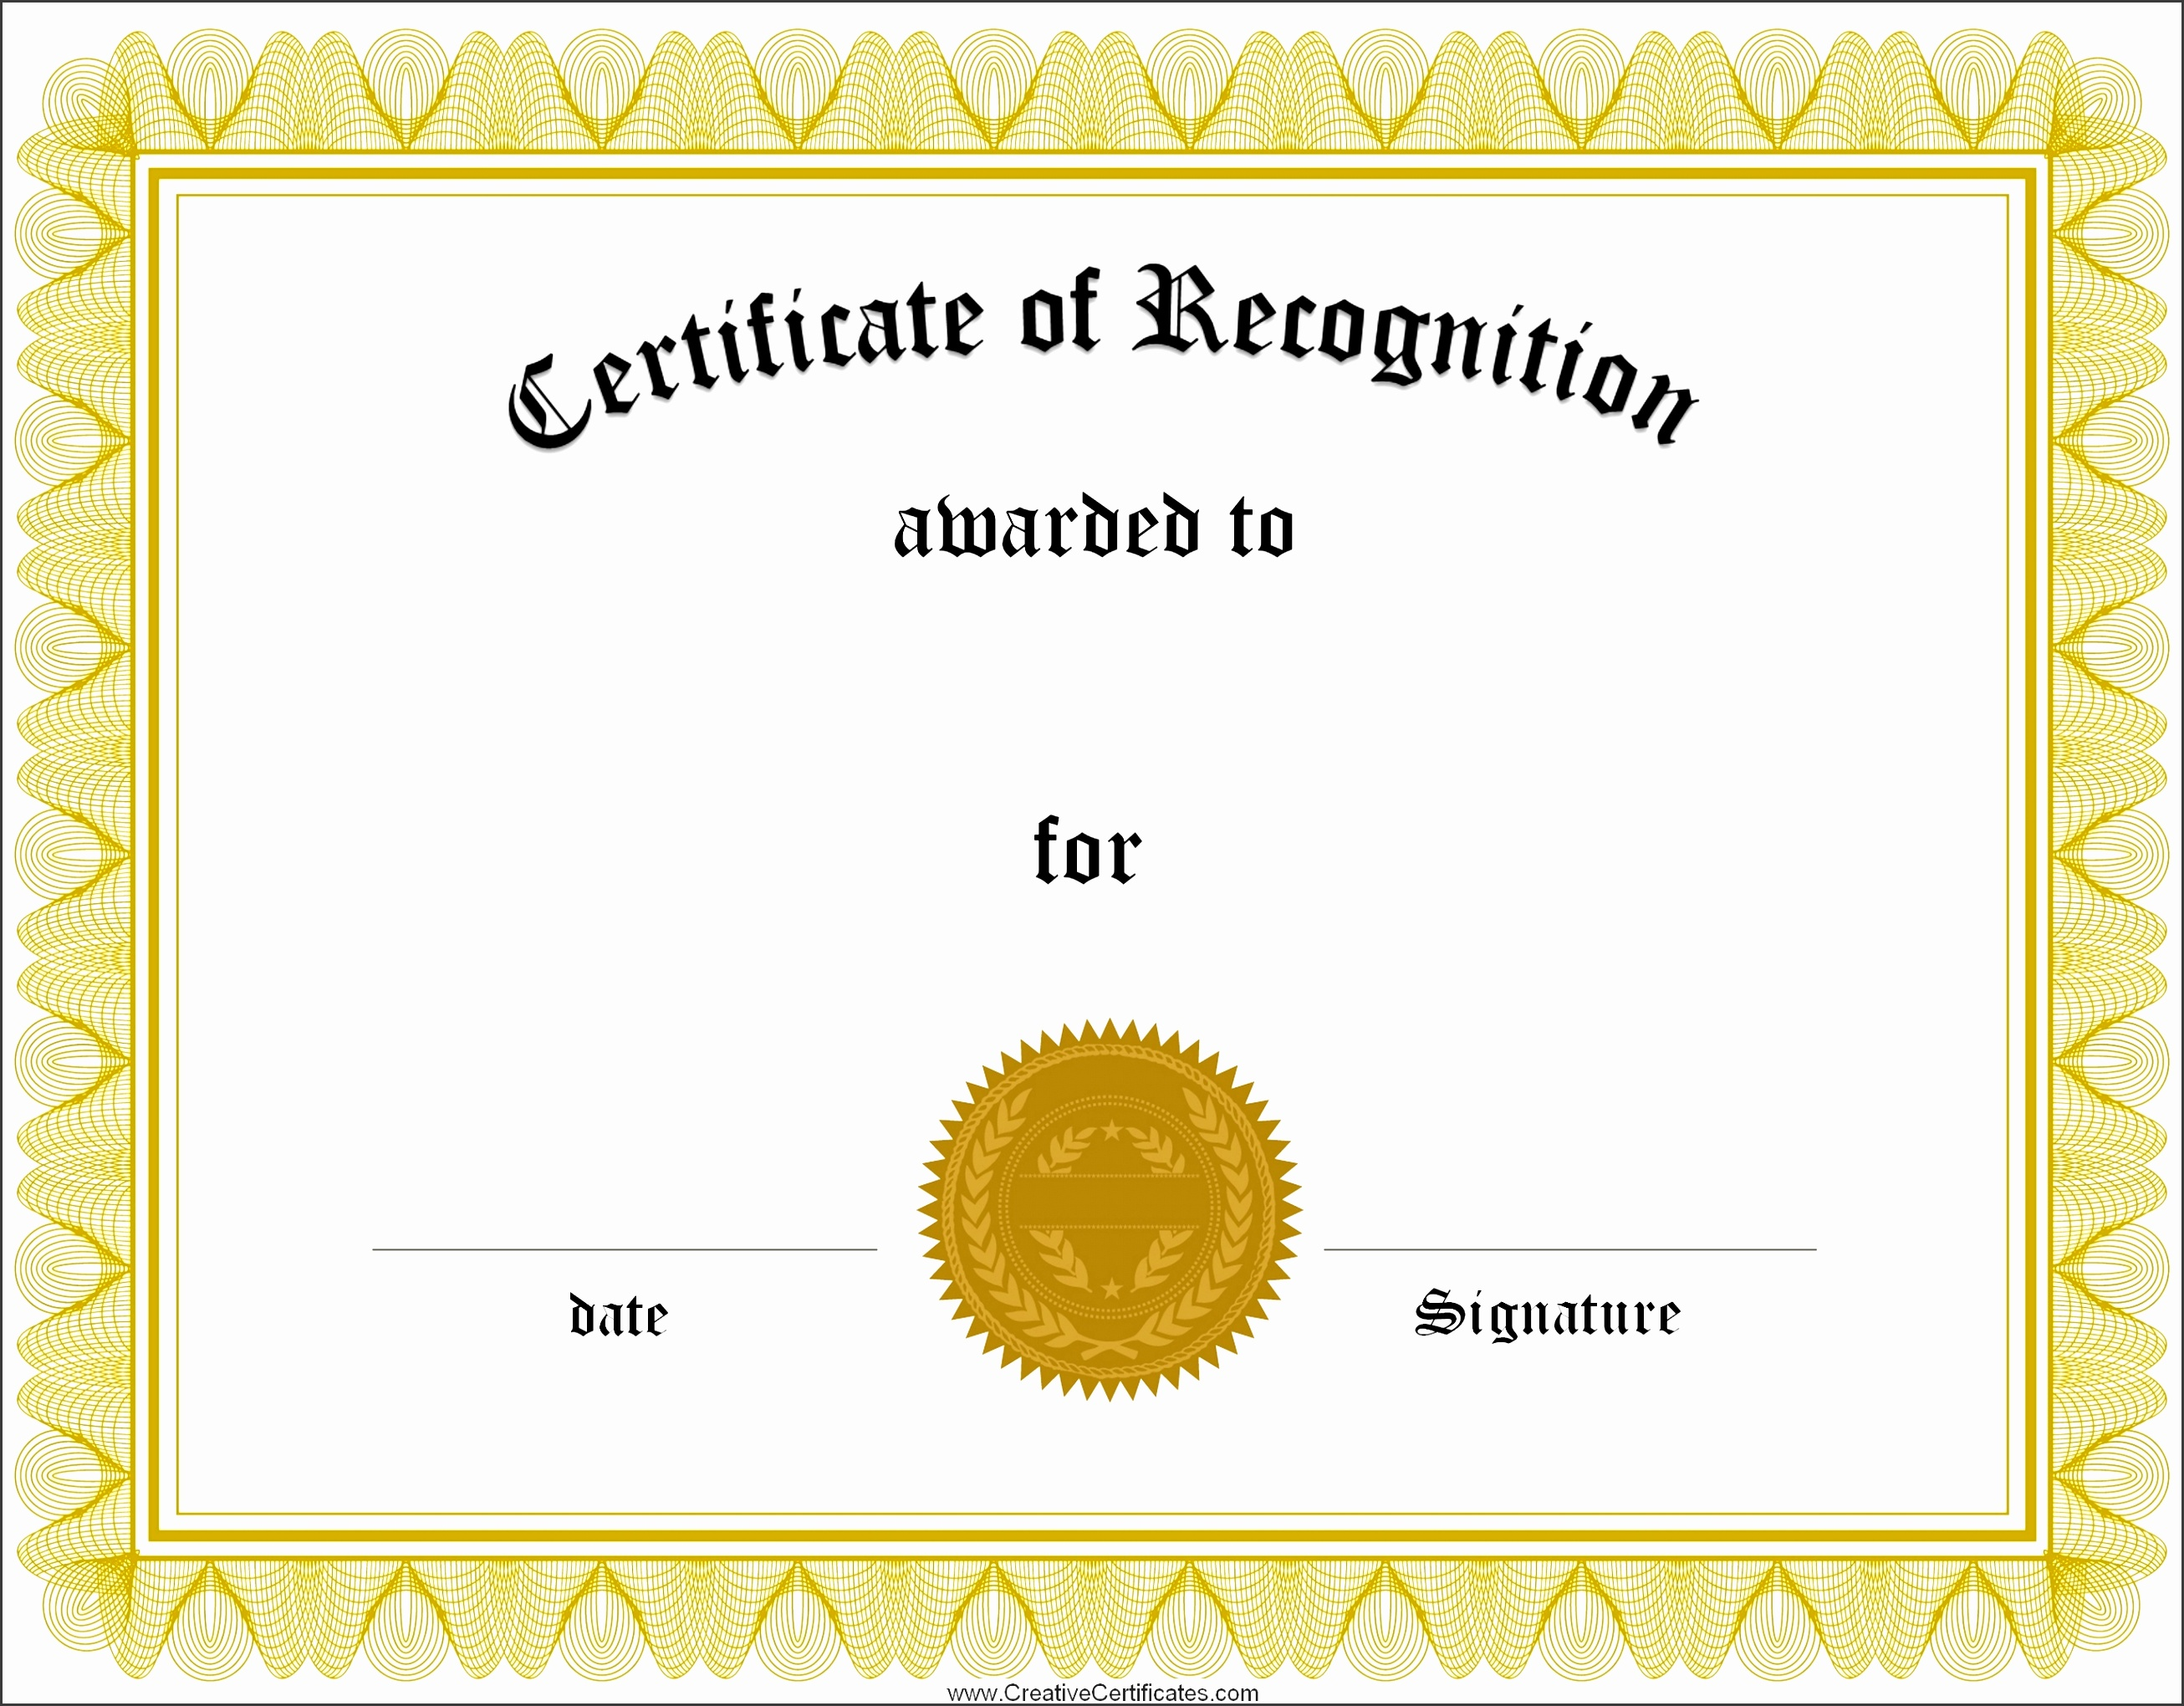 certificate template appreciation recognition easy templates printable army certificates sampletemplatess conduct example empty card professional award smithchavezlaw